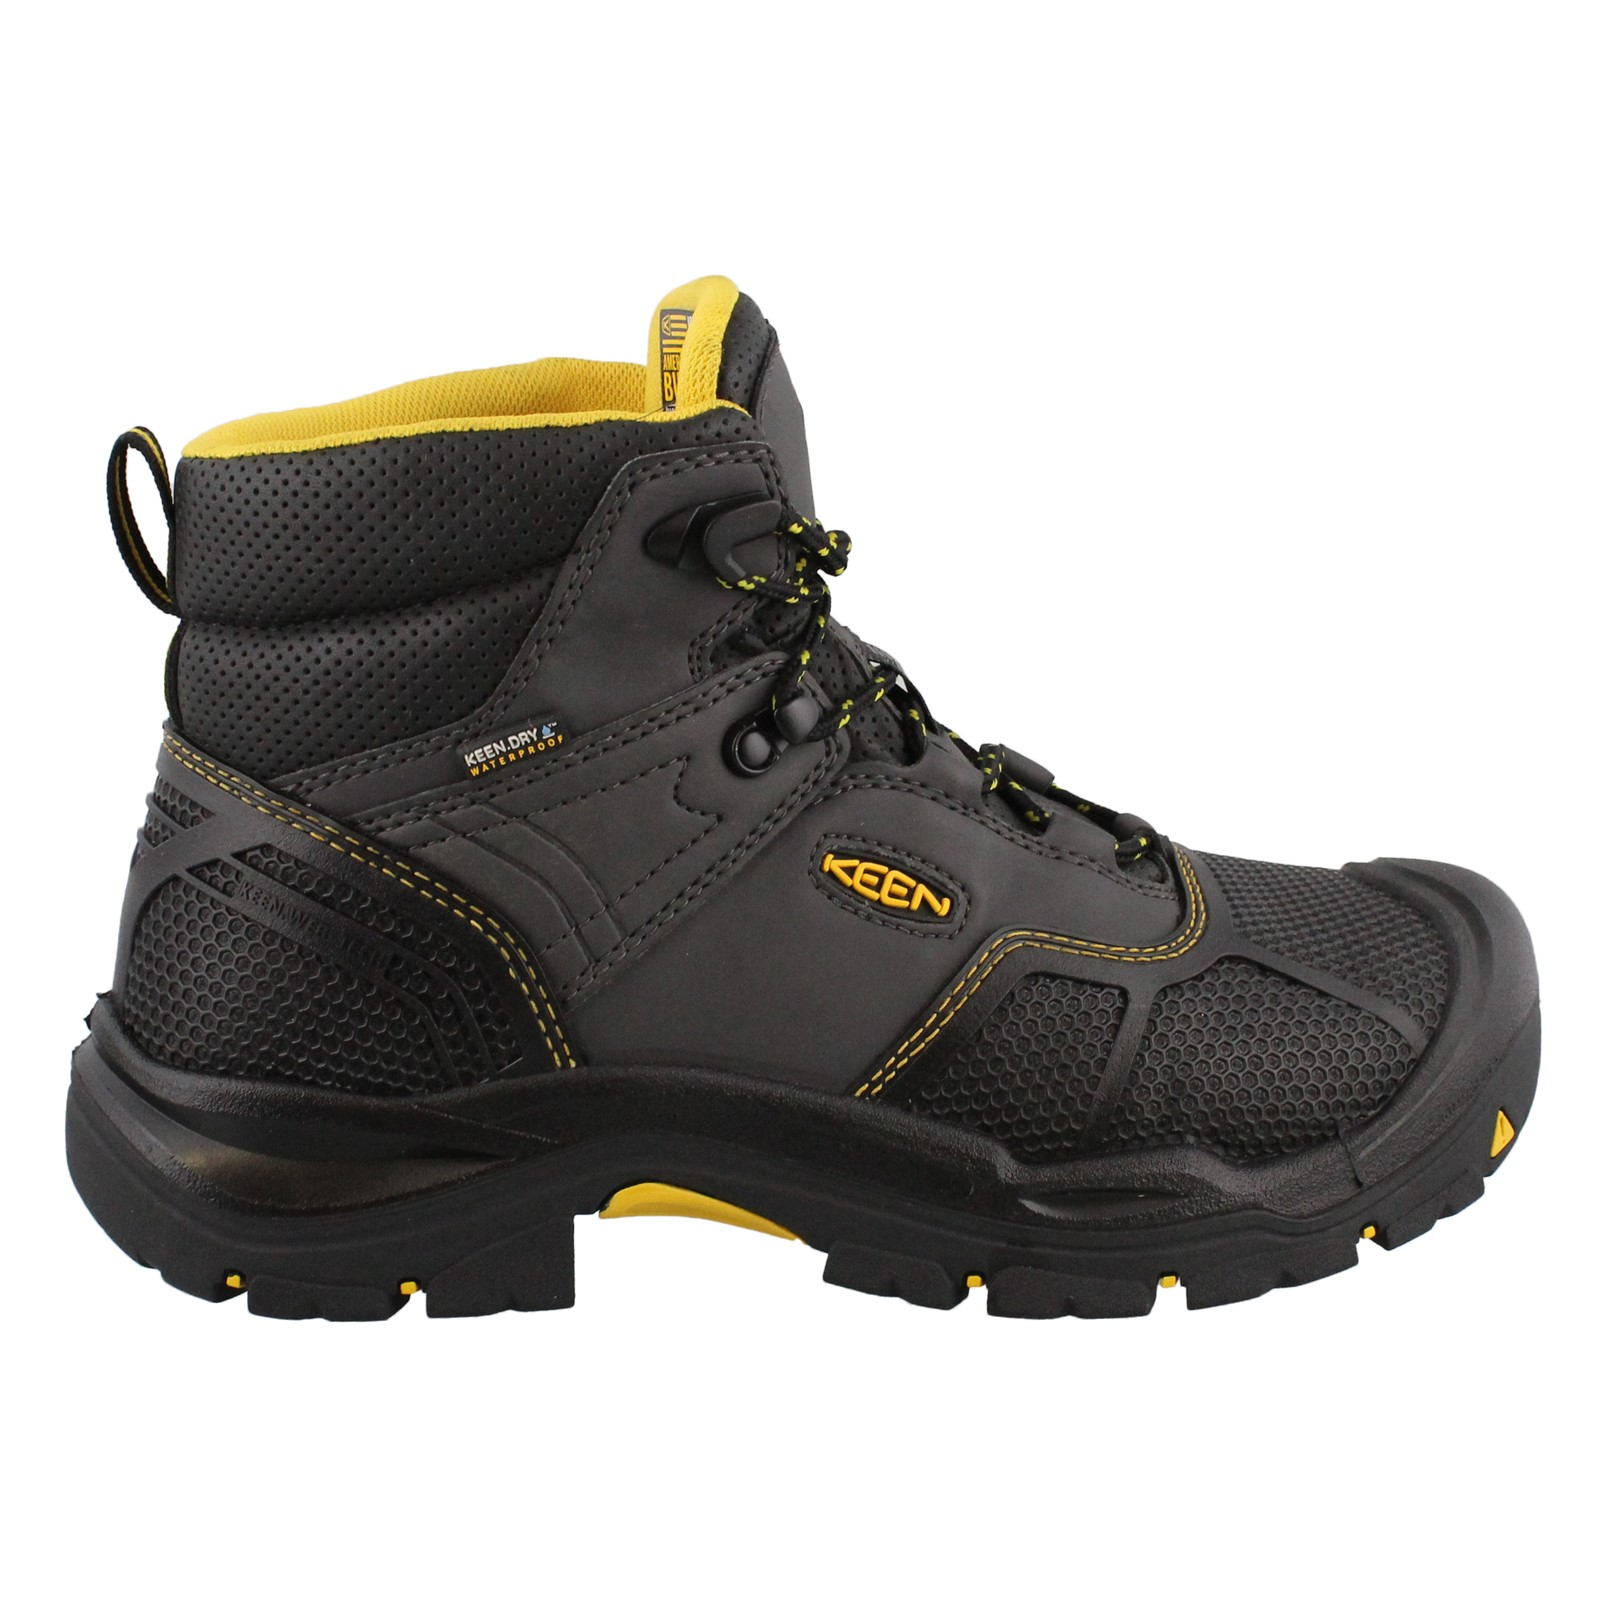 Men's Keen, Logandale Mid Waterproof Steel Toe Boots